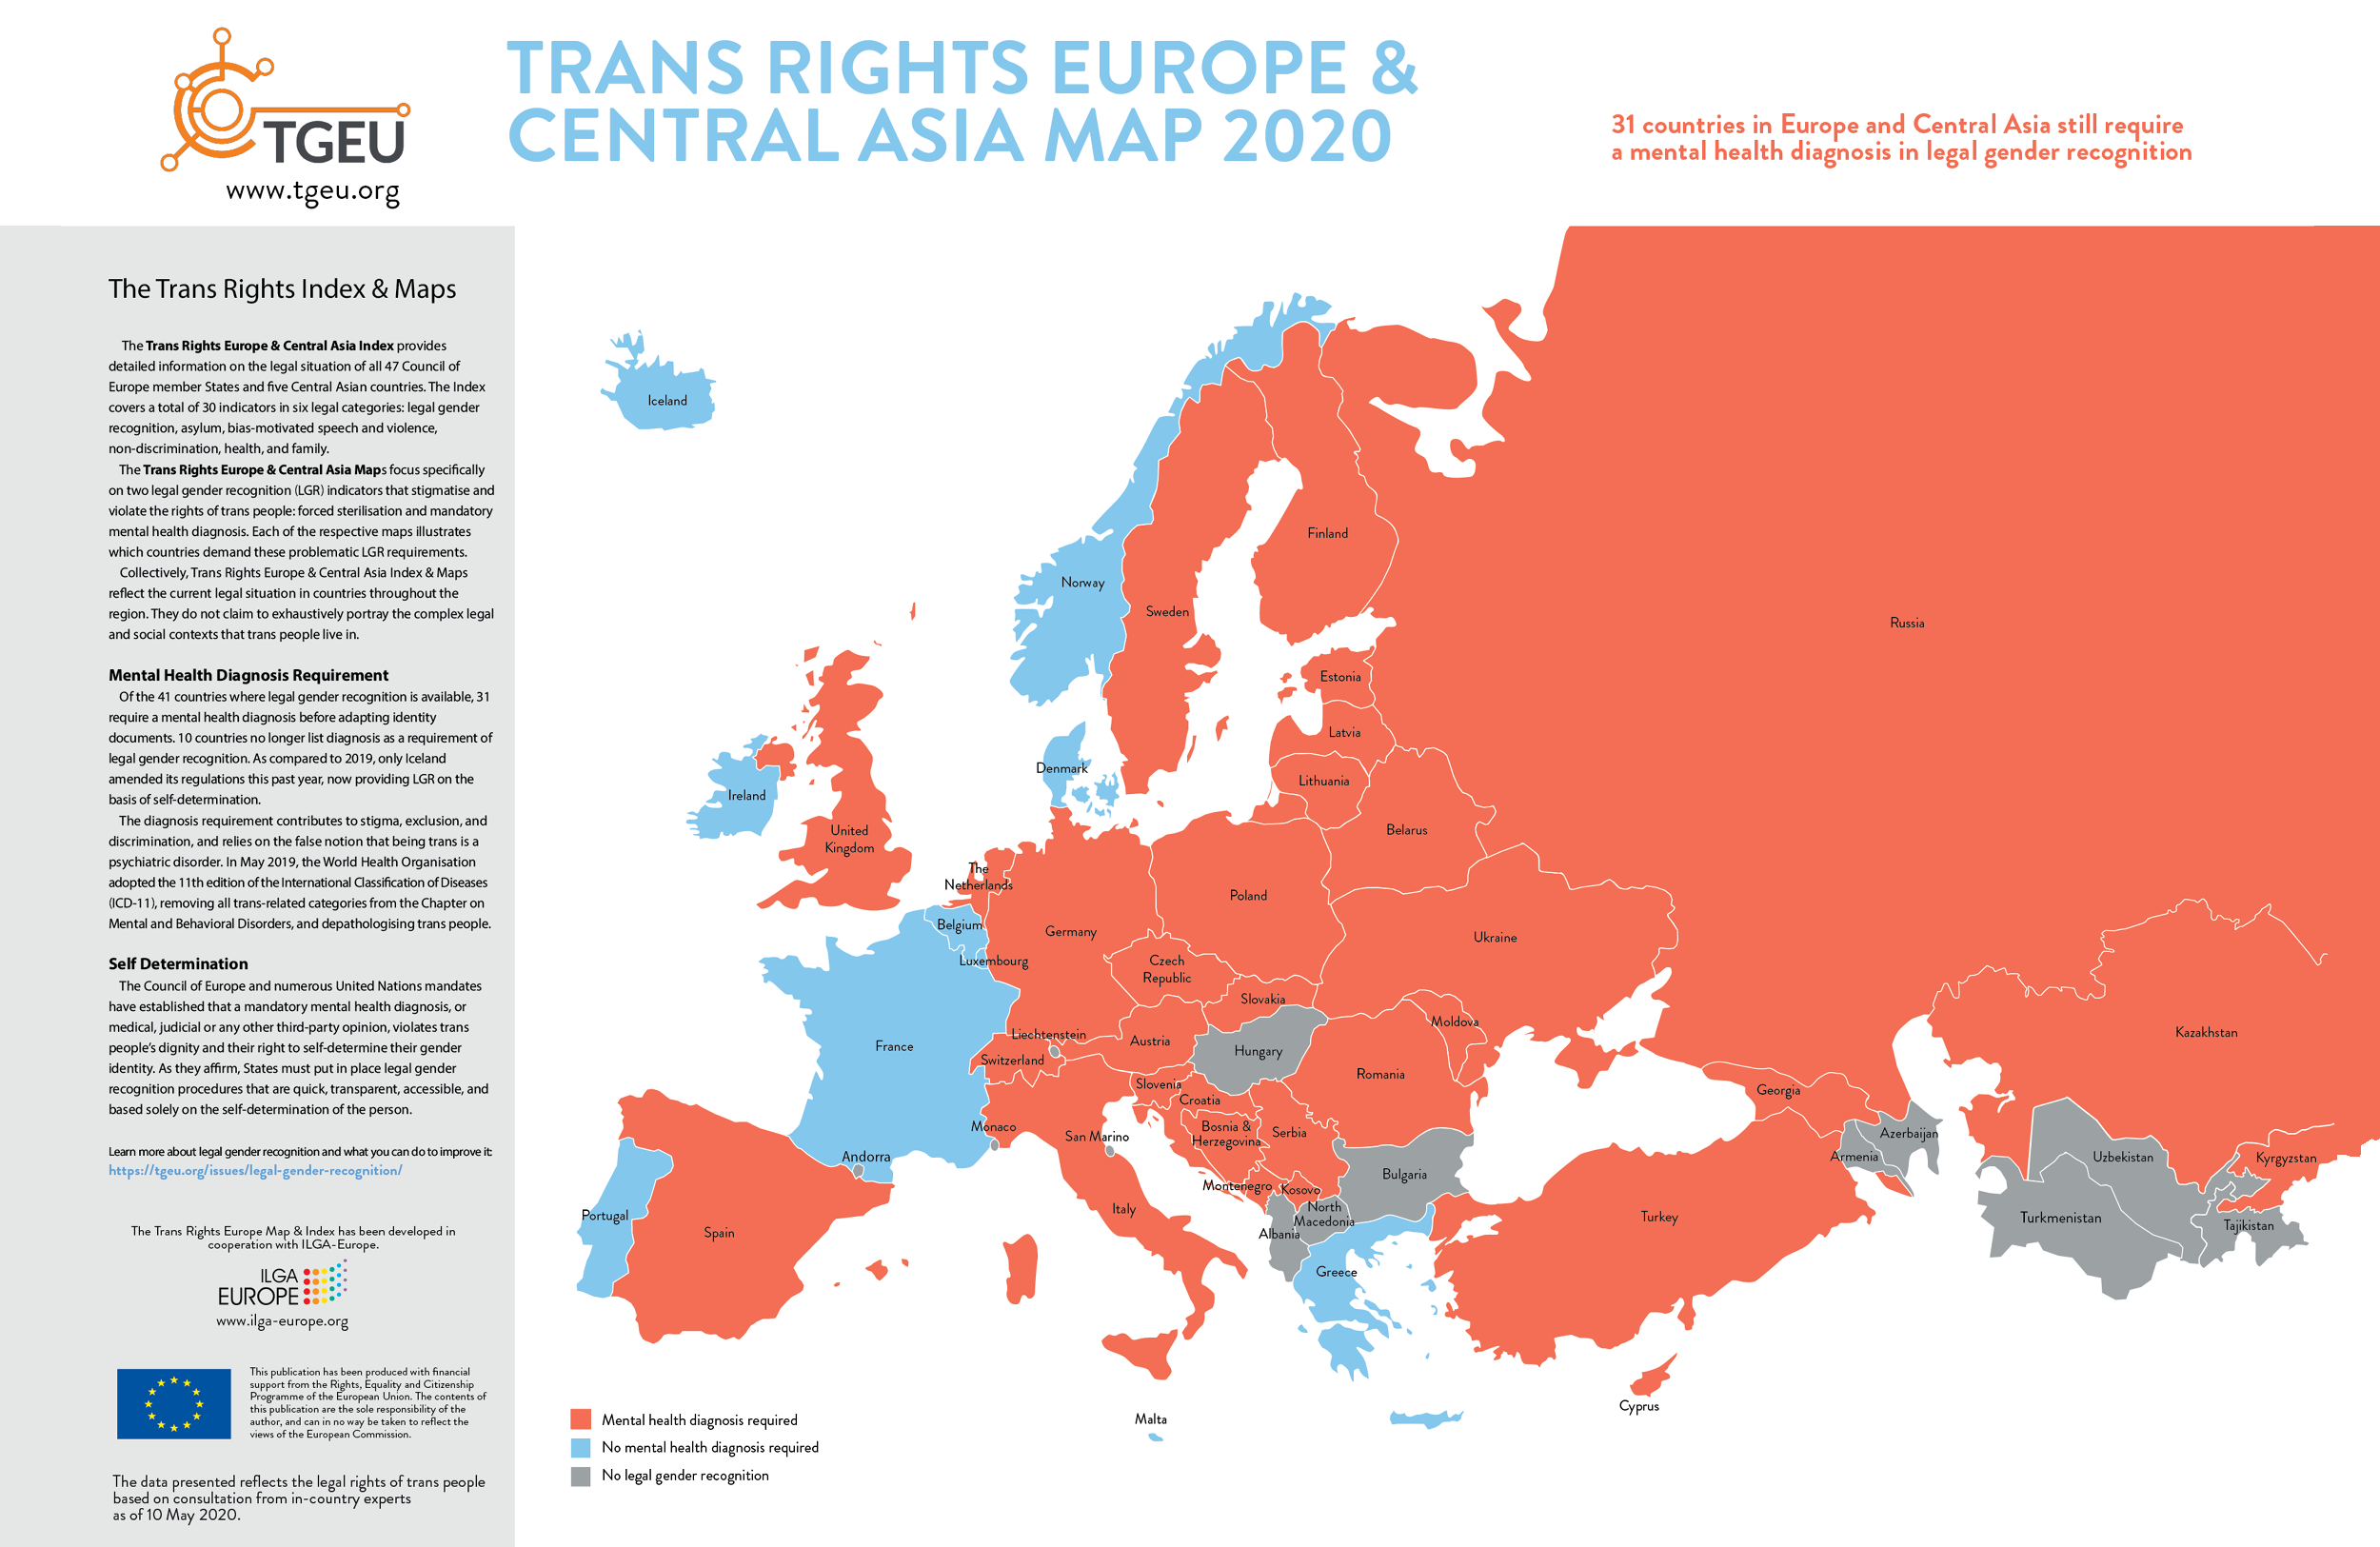 2020 Trans Rights Europe & Central Asia Map